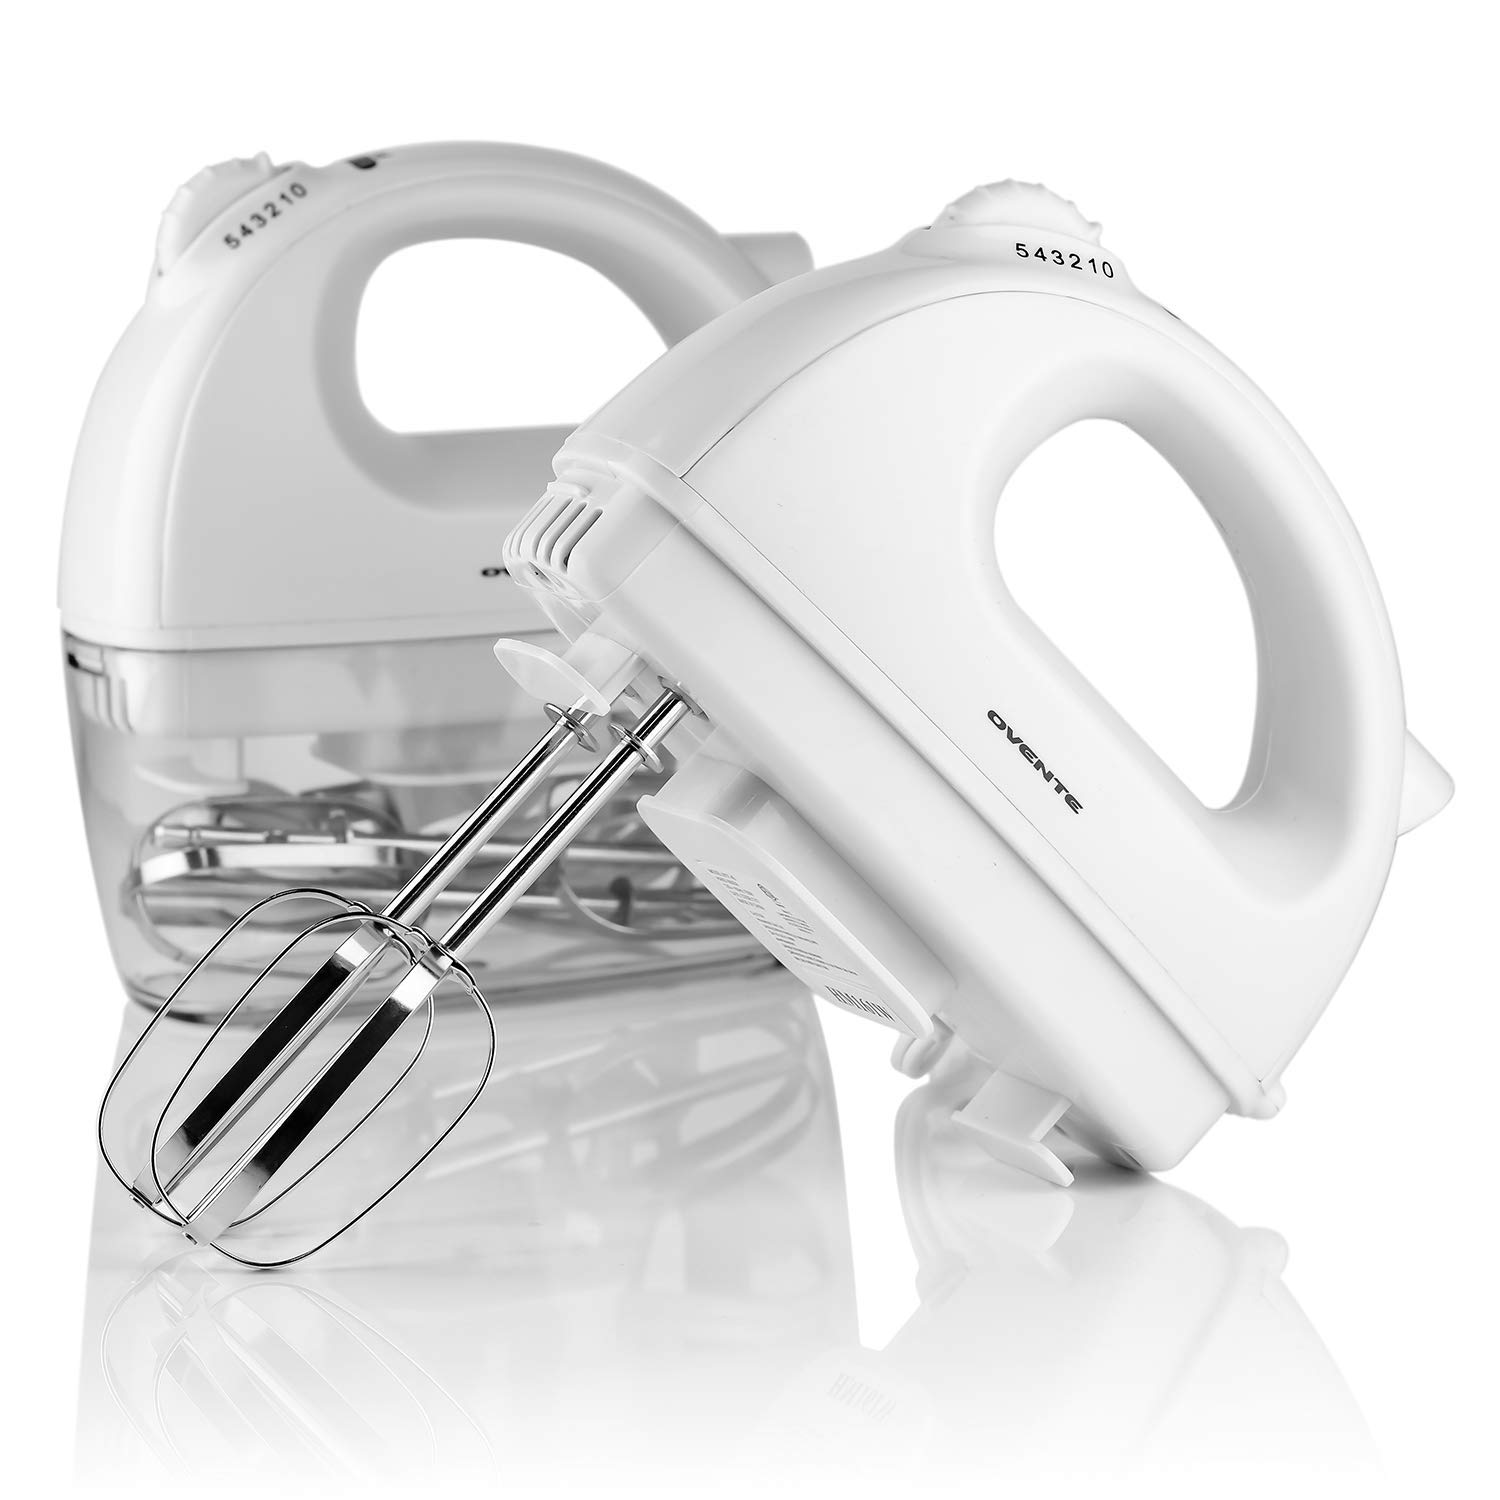 Ovente Electric Hand Mixer, 5 Mixing Speeds, 200W, 2 Stainless Steel Chrome Beaters & Free Snap-On Case, White (HM161W) by Ovente